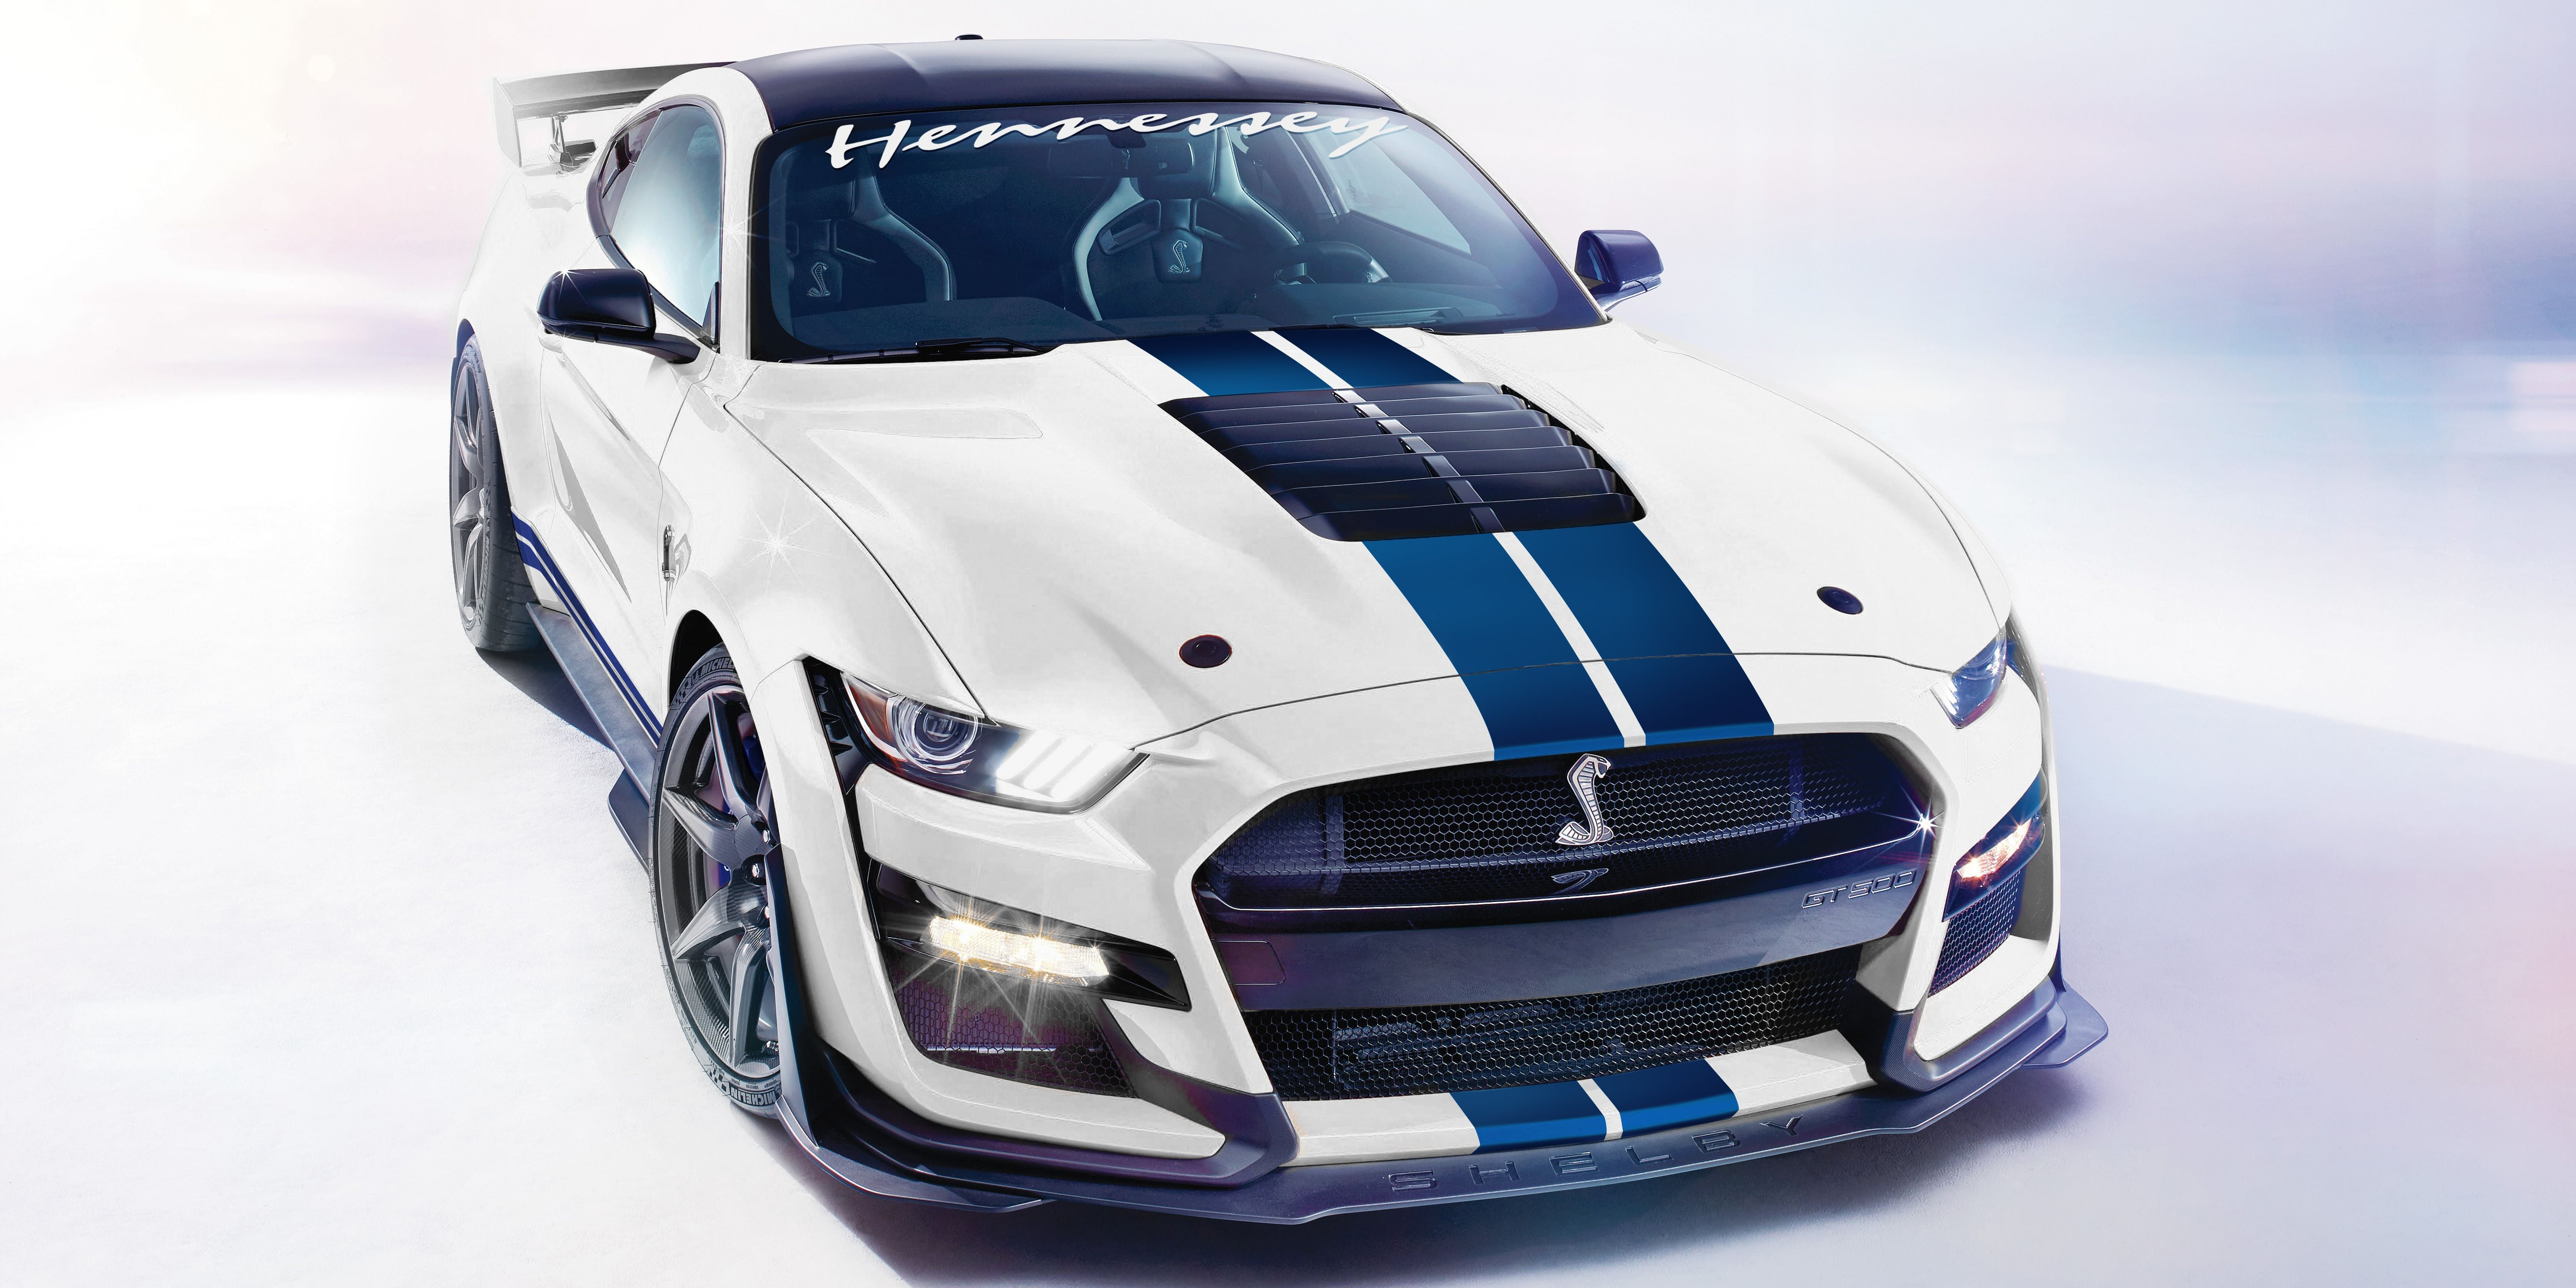 Hennessey Performance Announces 1,200 hp Shelby GT500s